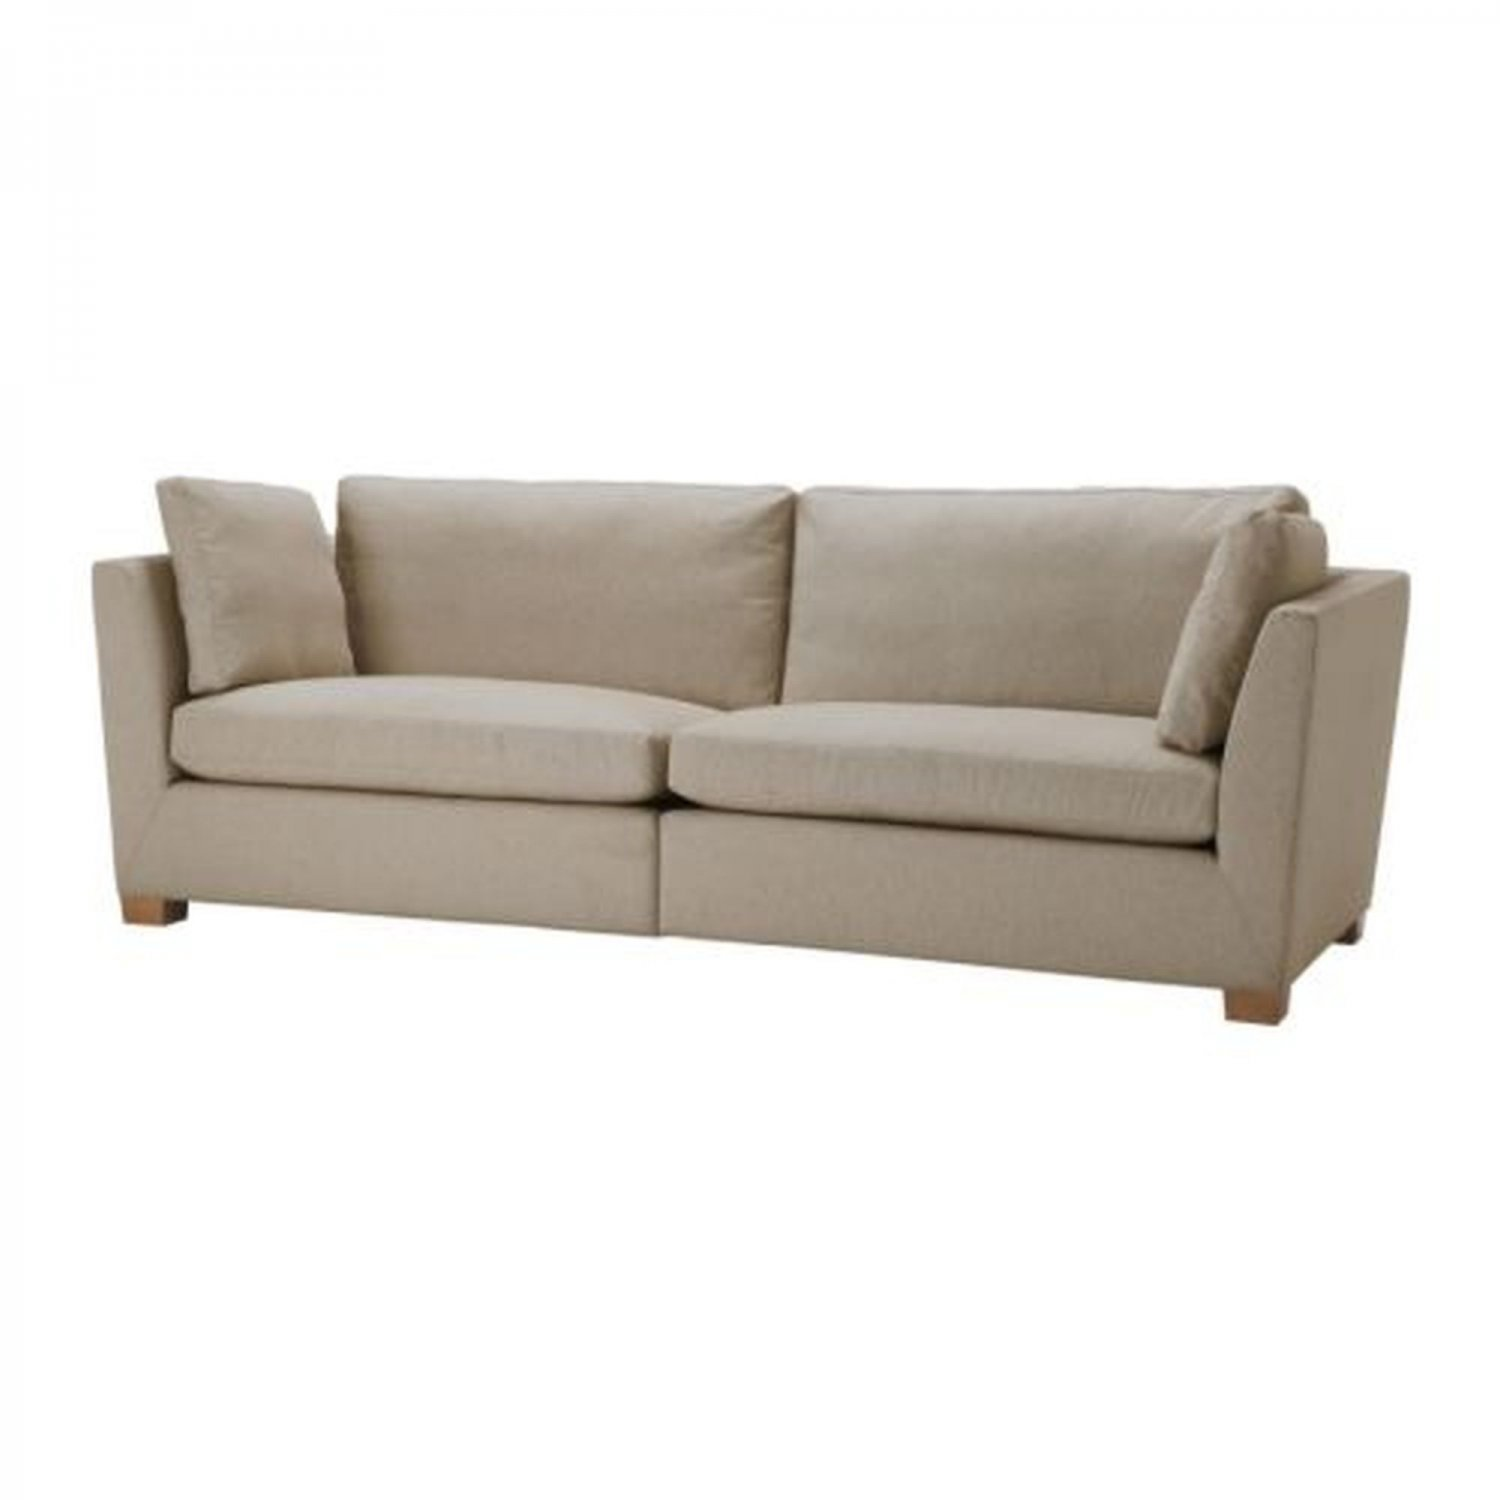 sofas in ikea good for dogs stockholm 3 5 seat sofa slipcover cover gammelbo